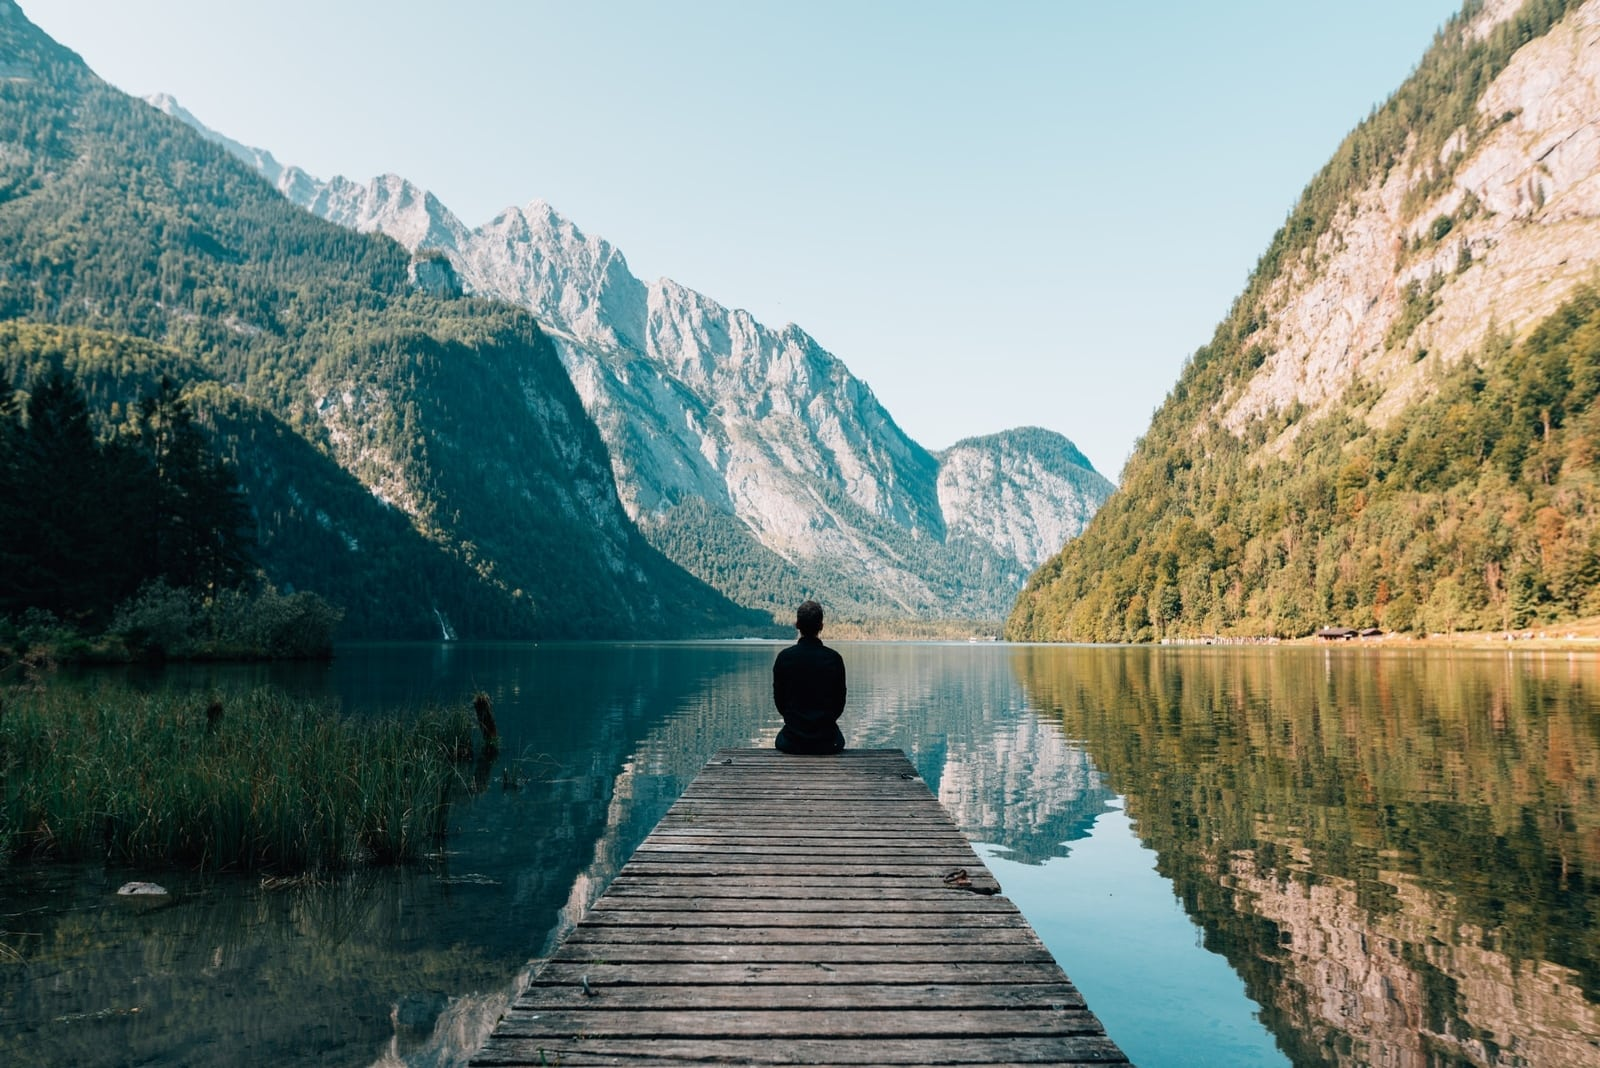 man sitting on dock looking at water